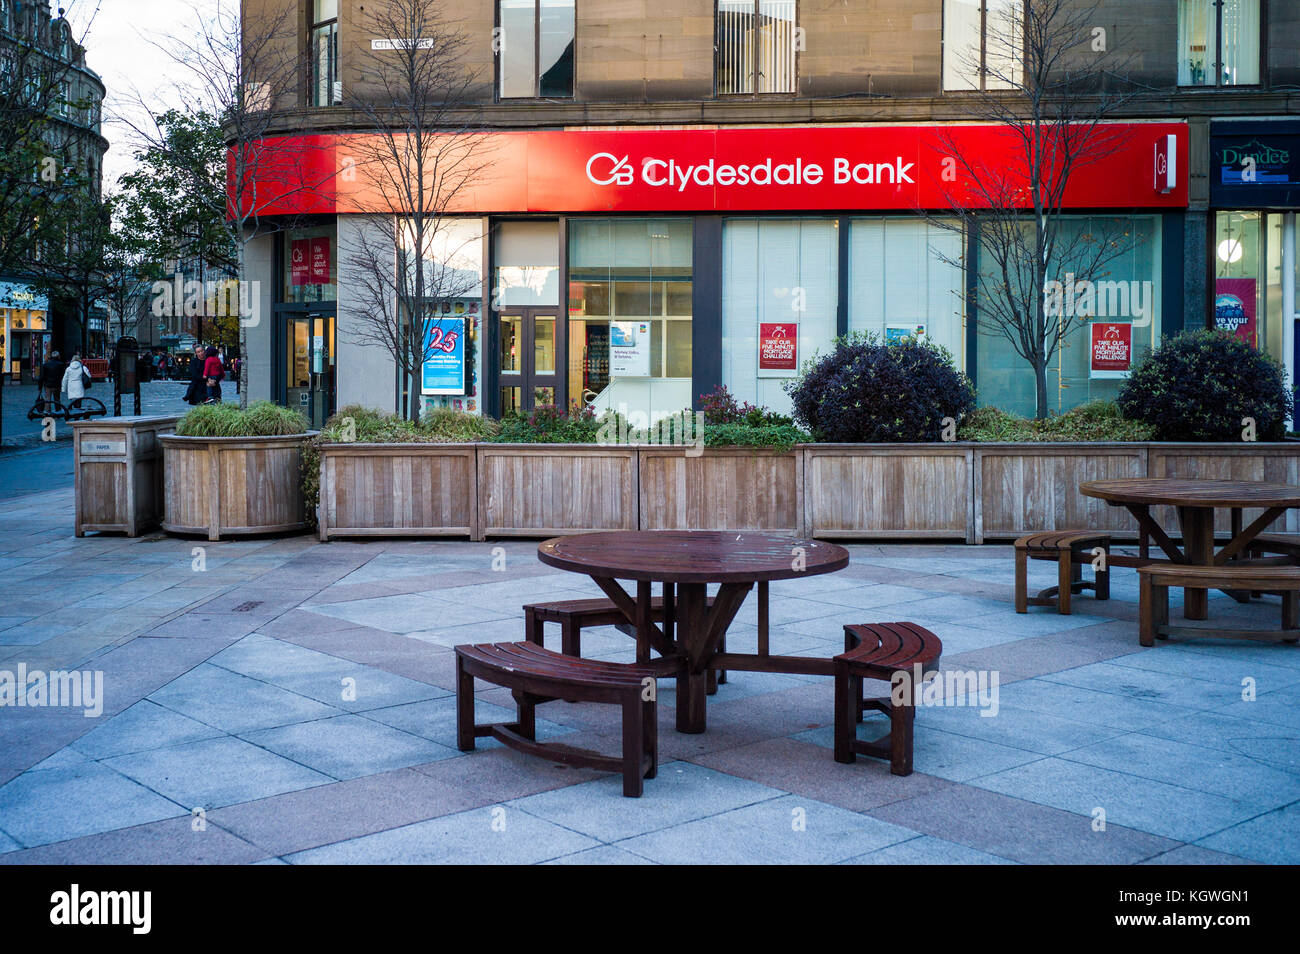 Clydesdale Bank branch Dundee -   Clydesdale Bank is a Scottish commercial bank. Formed in Glasgow in 1838. - Stock Image